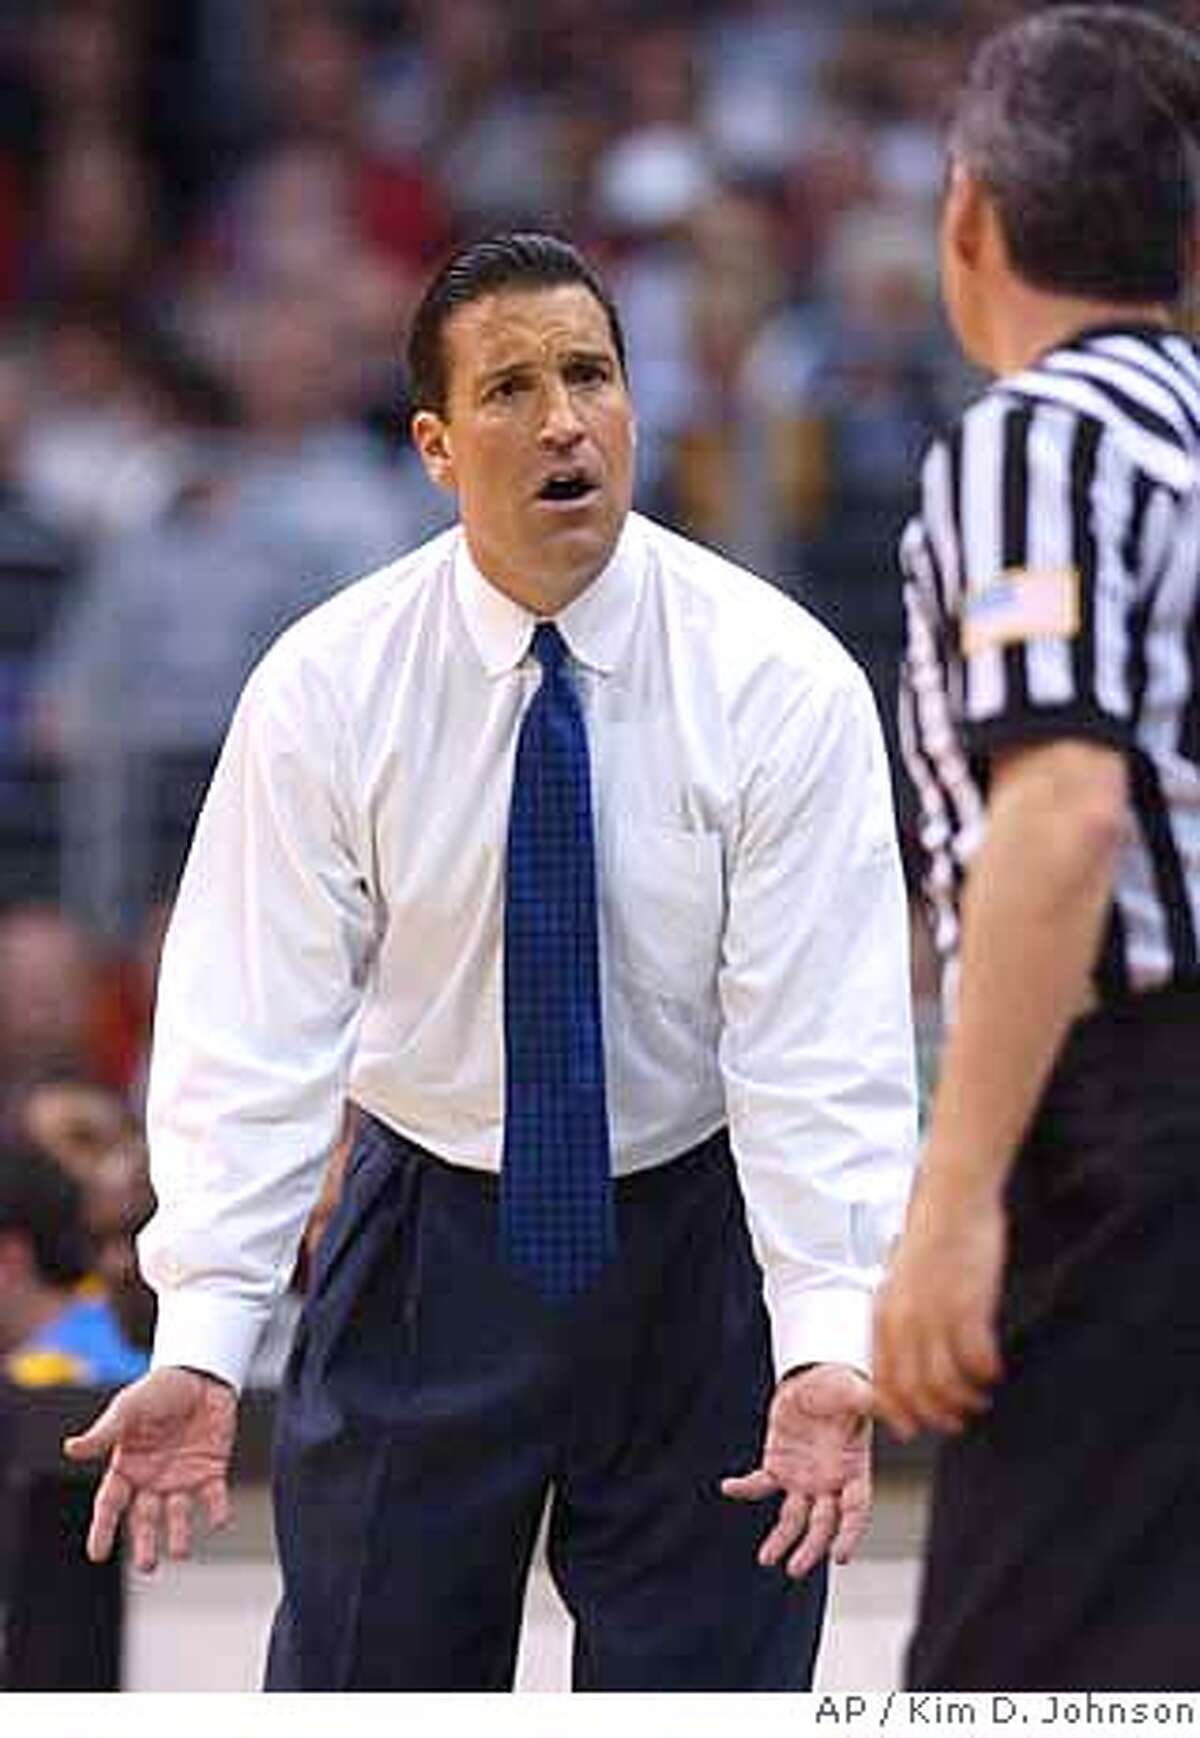 UCLA coach Steve Lavin complains about a call during the second half against Oregon during a semifinal of the Pacific 10 tournament Friday, March 14, 2003, in Los Angeles. Oregon won 75-74. (AP Photo/Kim D. Johnson) also ran 03/10/2004 Bill Cartwright Bill Cartwright ProductNameChronicle CAT